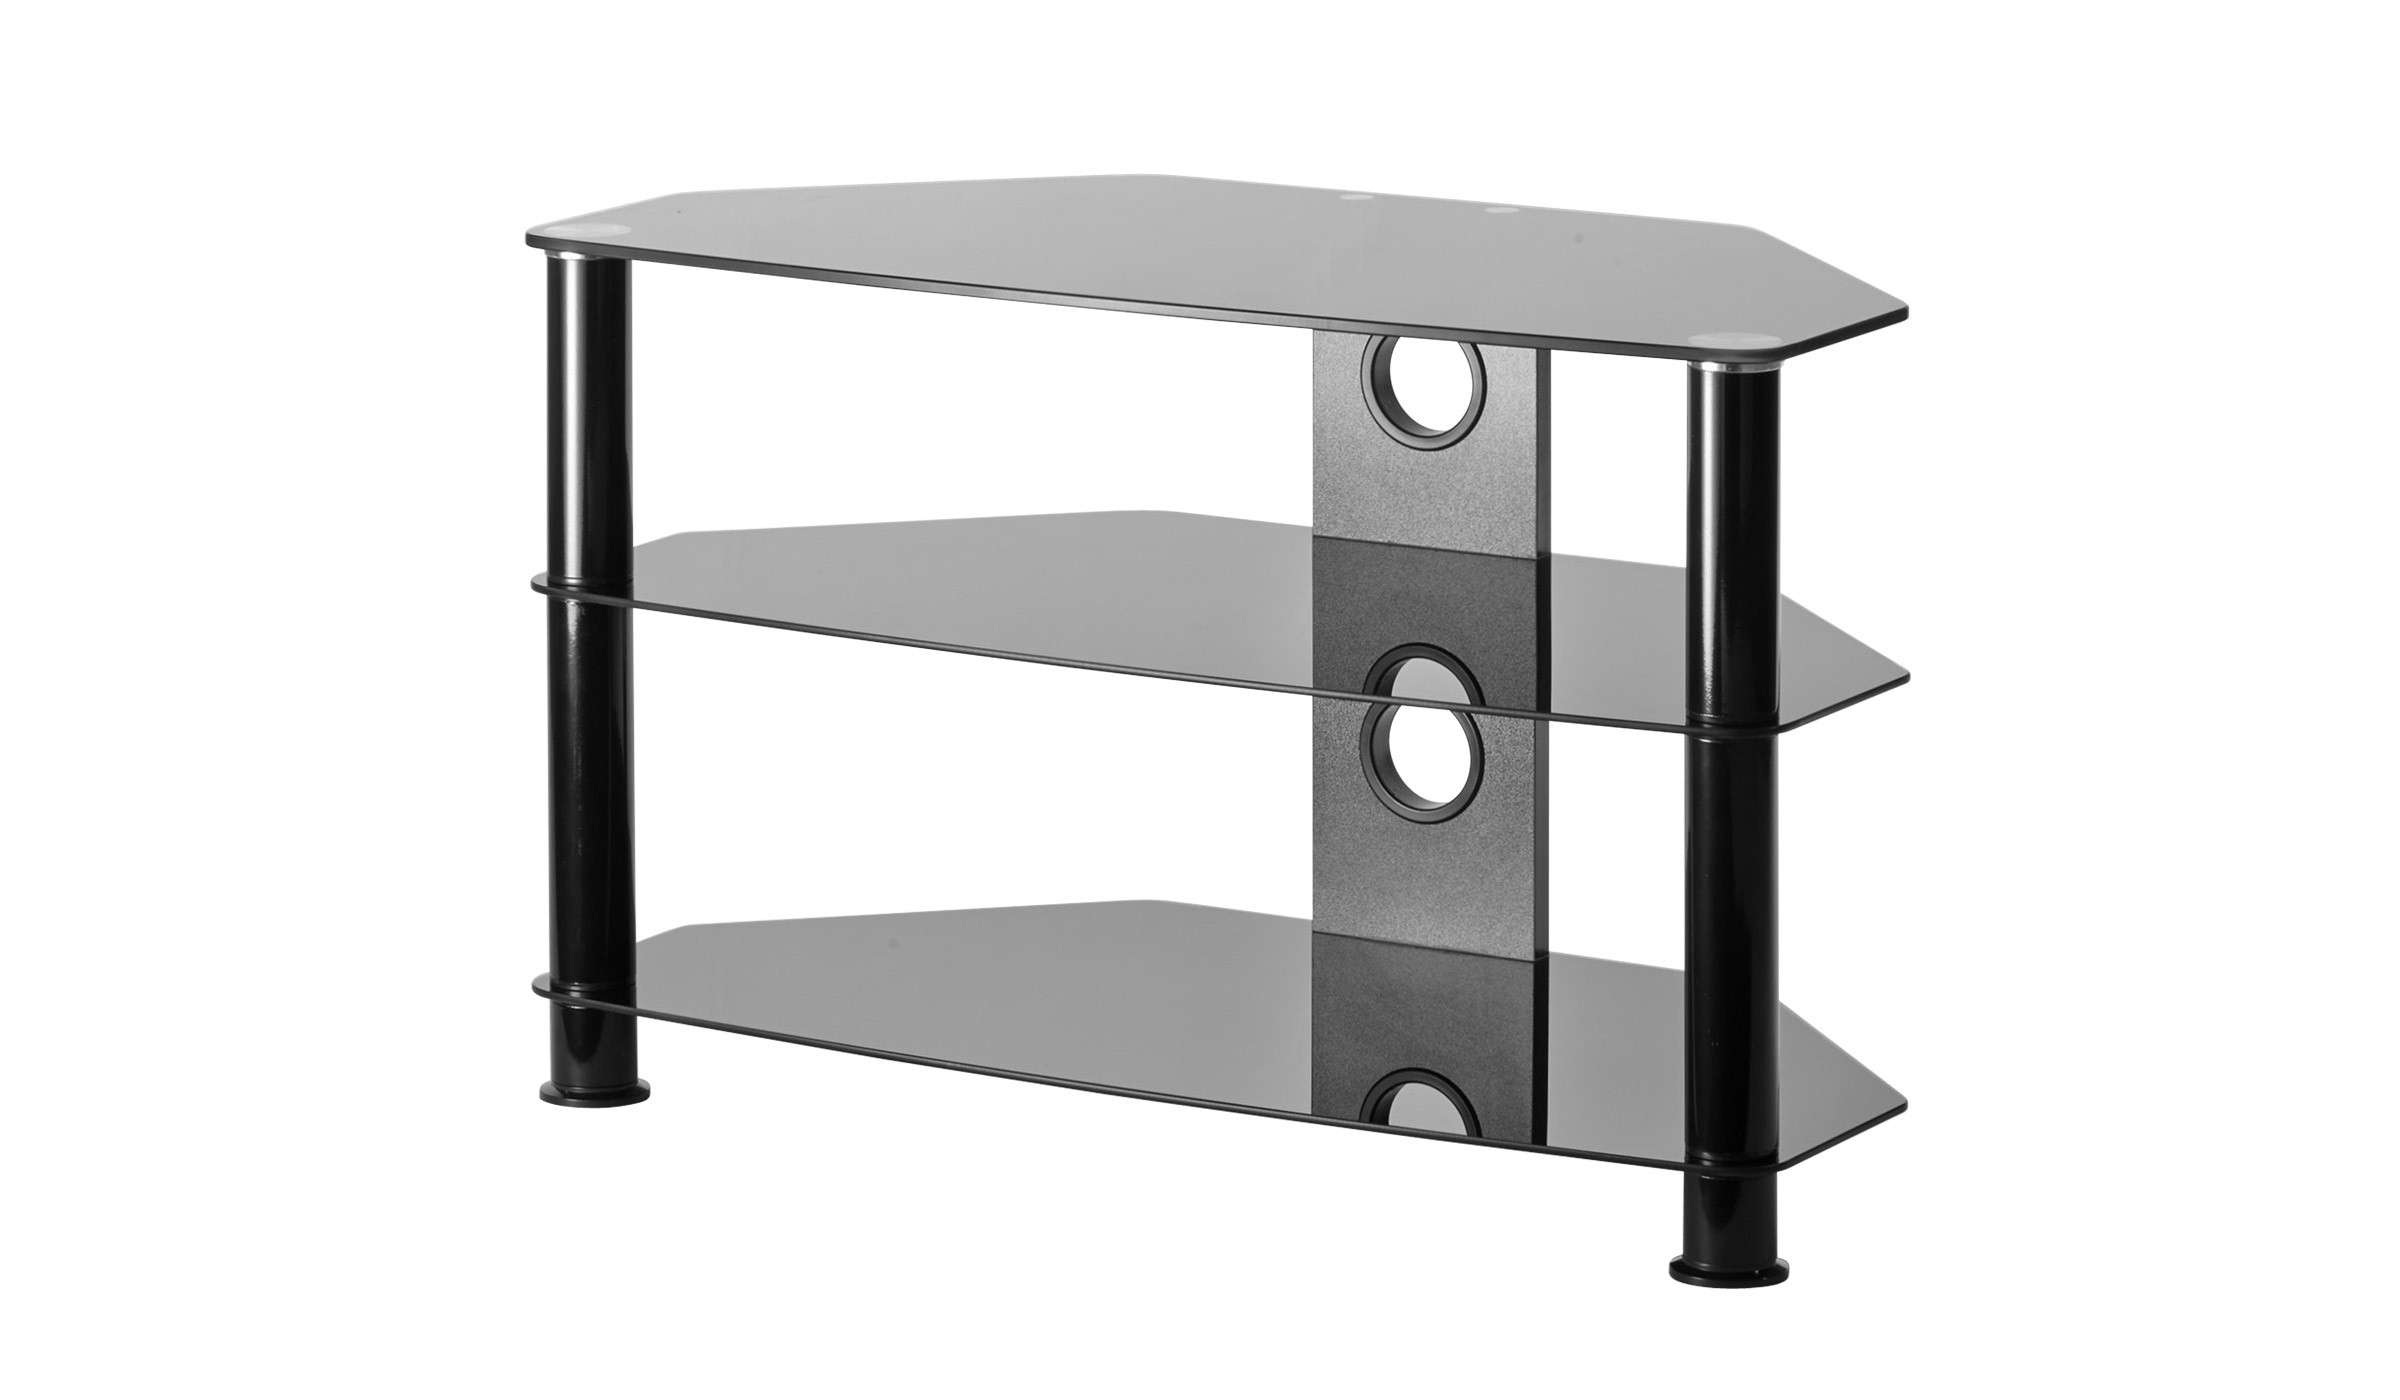 Black Glass Corner Tv Stand Up To 37 Inch Tv | Mmt Db800 For 32 Inch Corner Tv Stands (View 10 of 15)